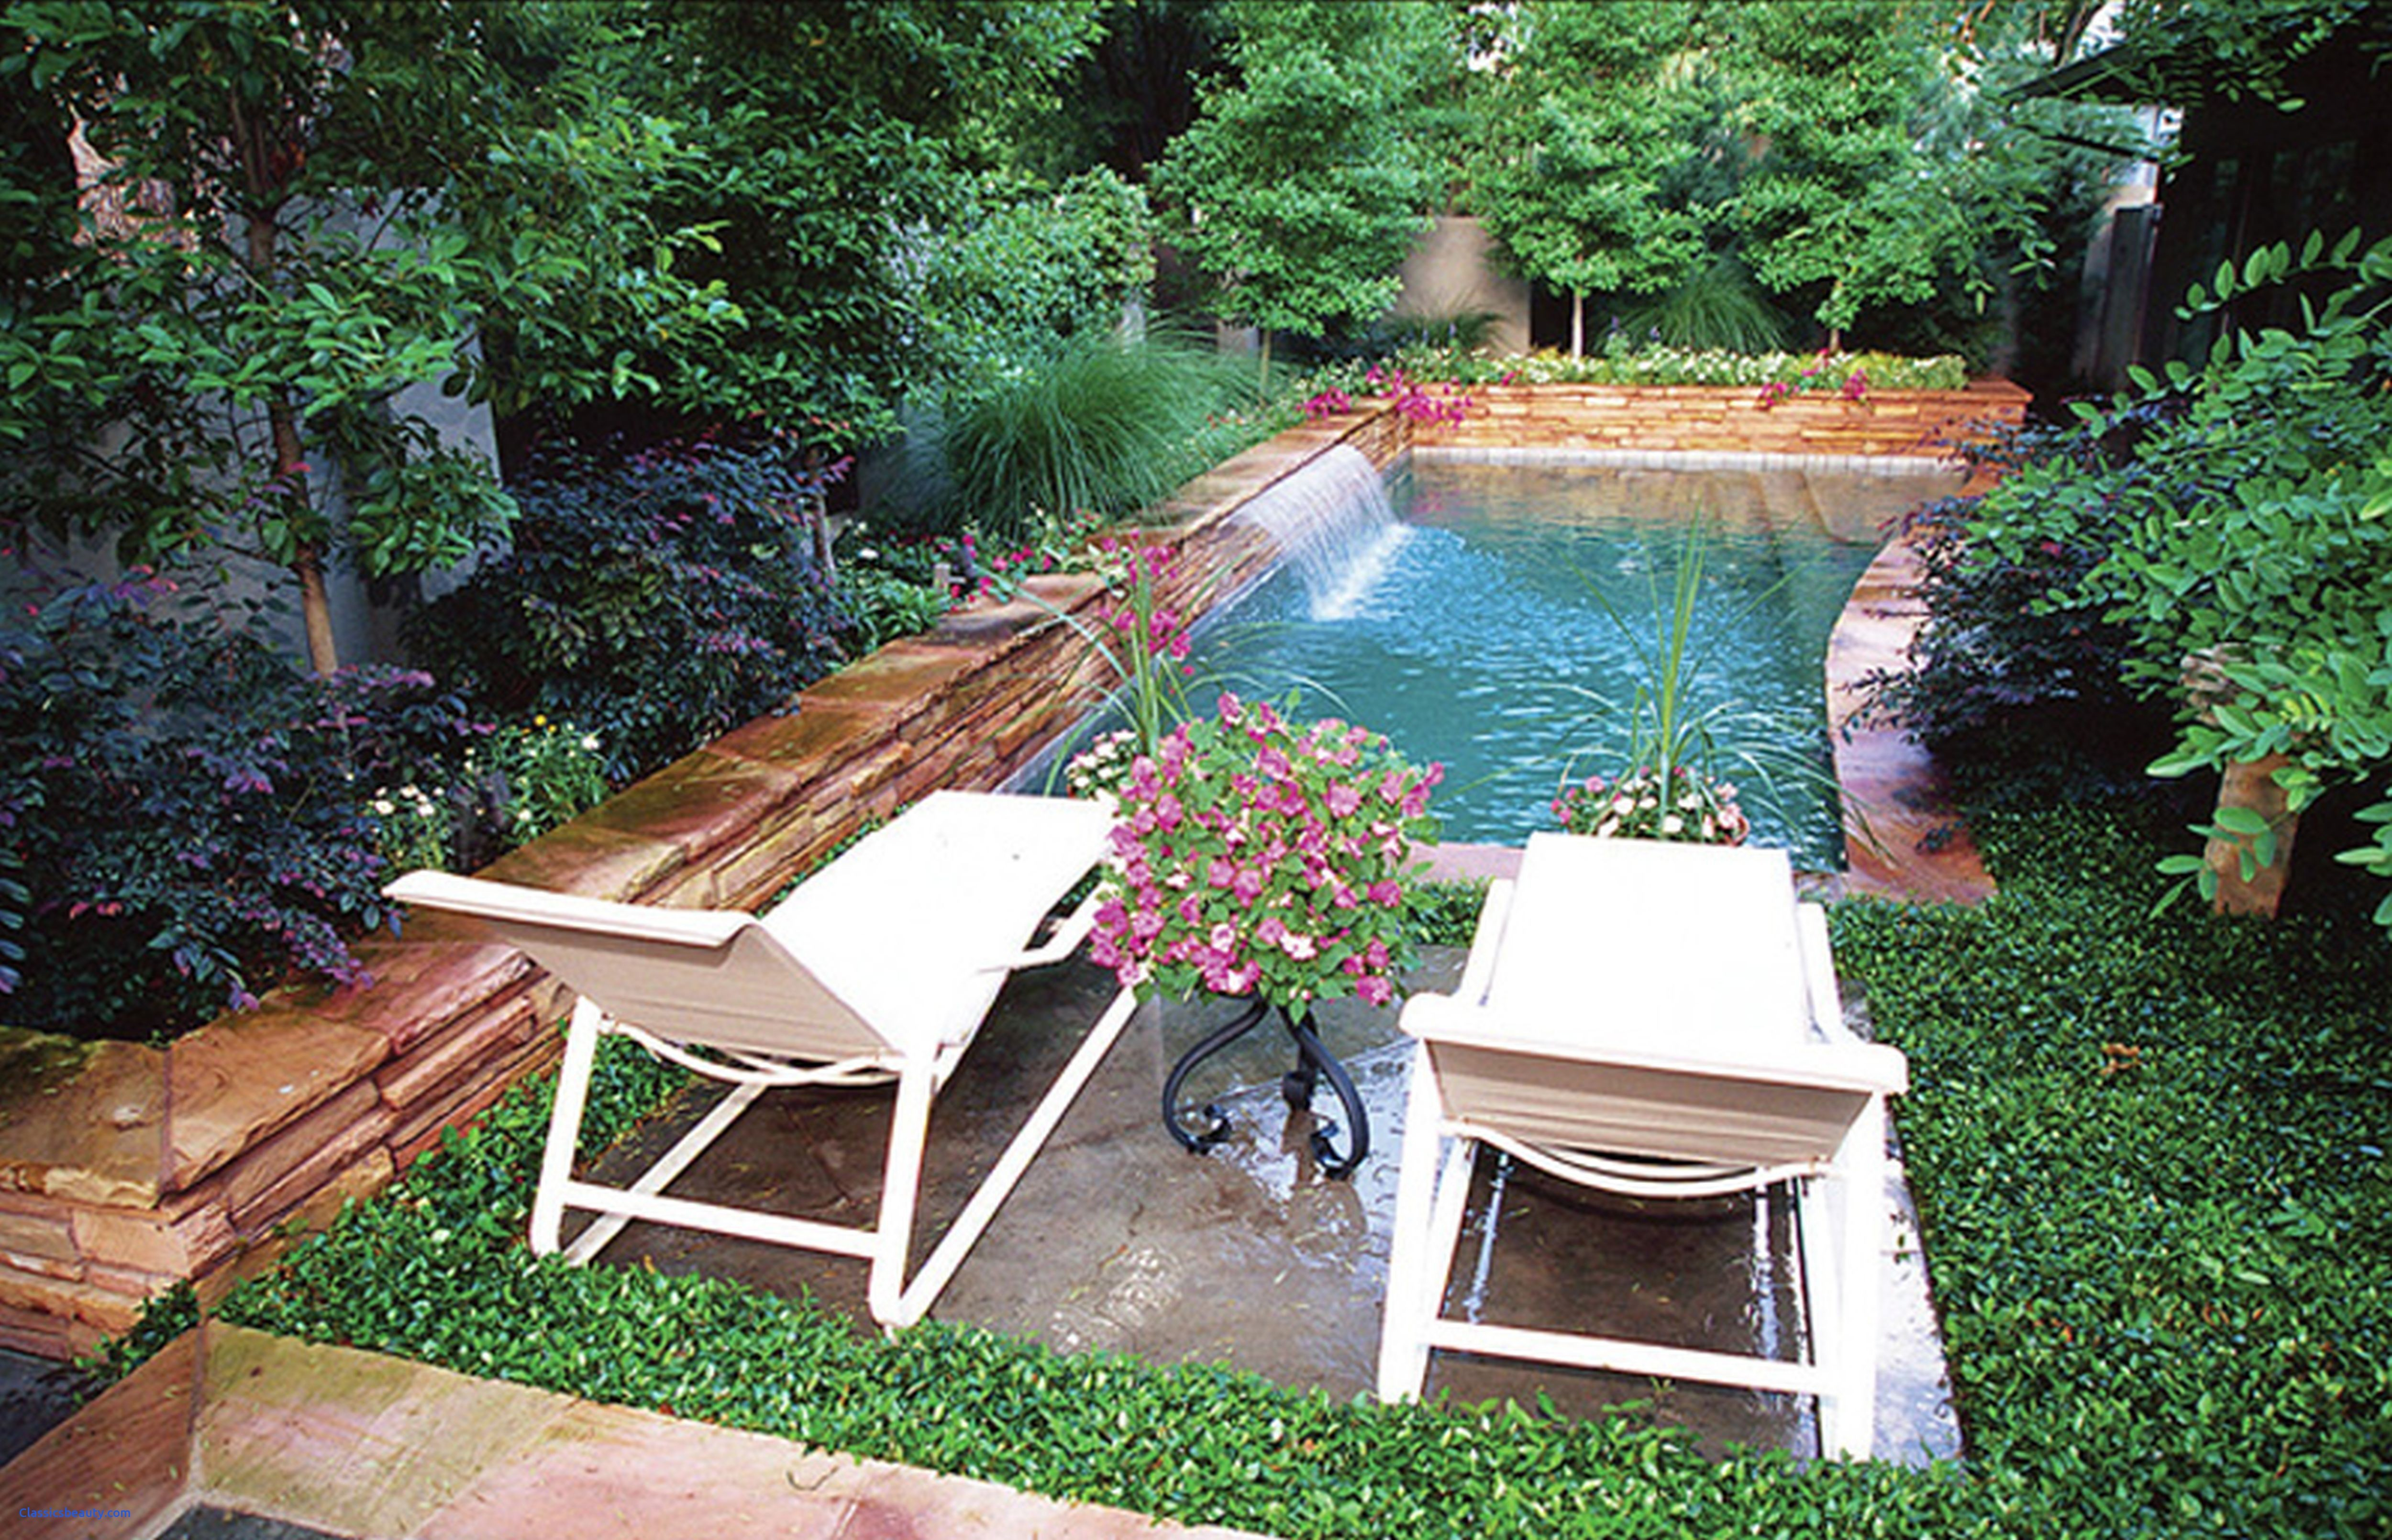 Simple Patio Ideas For Small Backyards Best Of Turismoestrategicoco throughout Simple Backyard Ideas For Small Yards